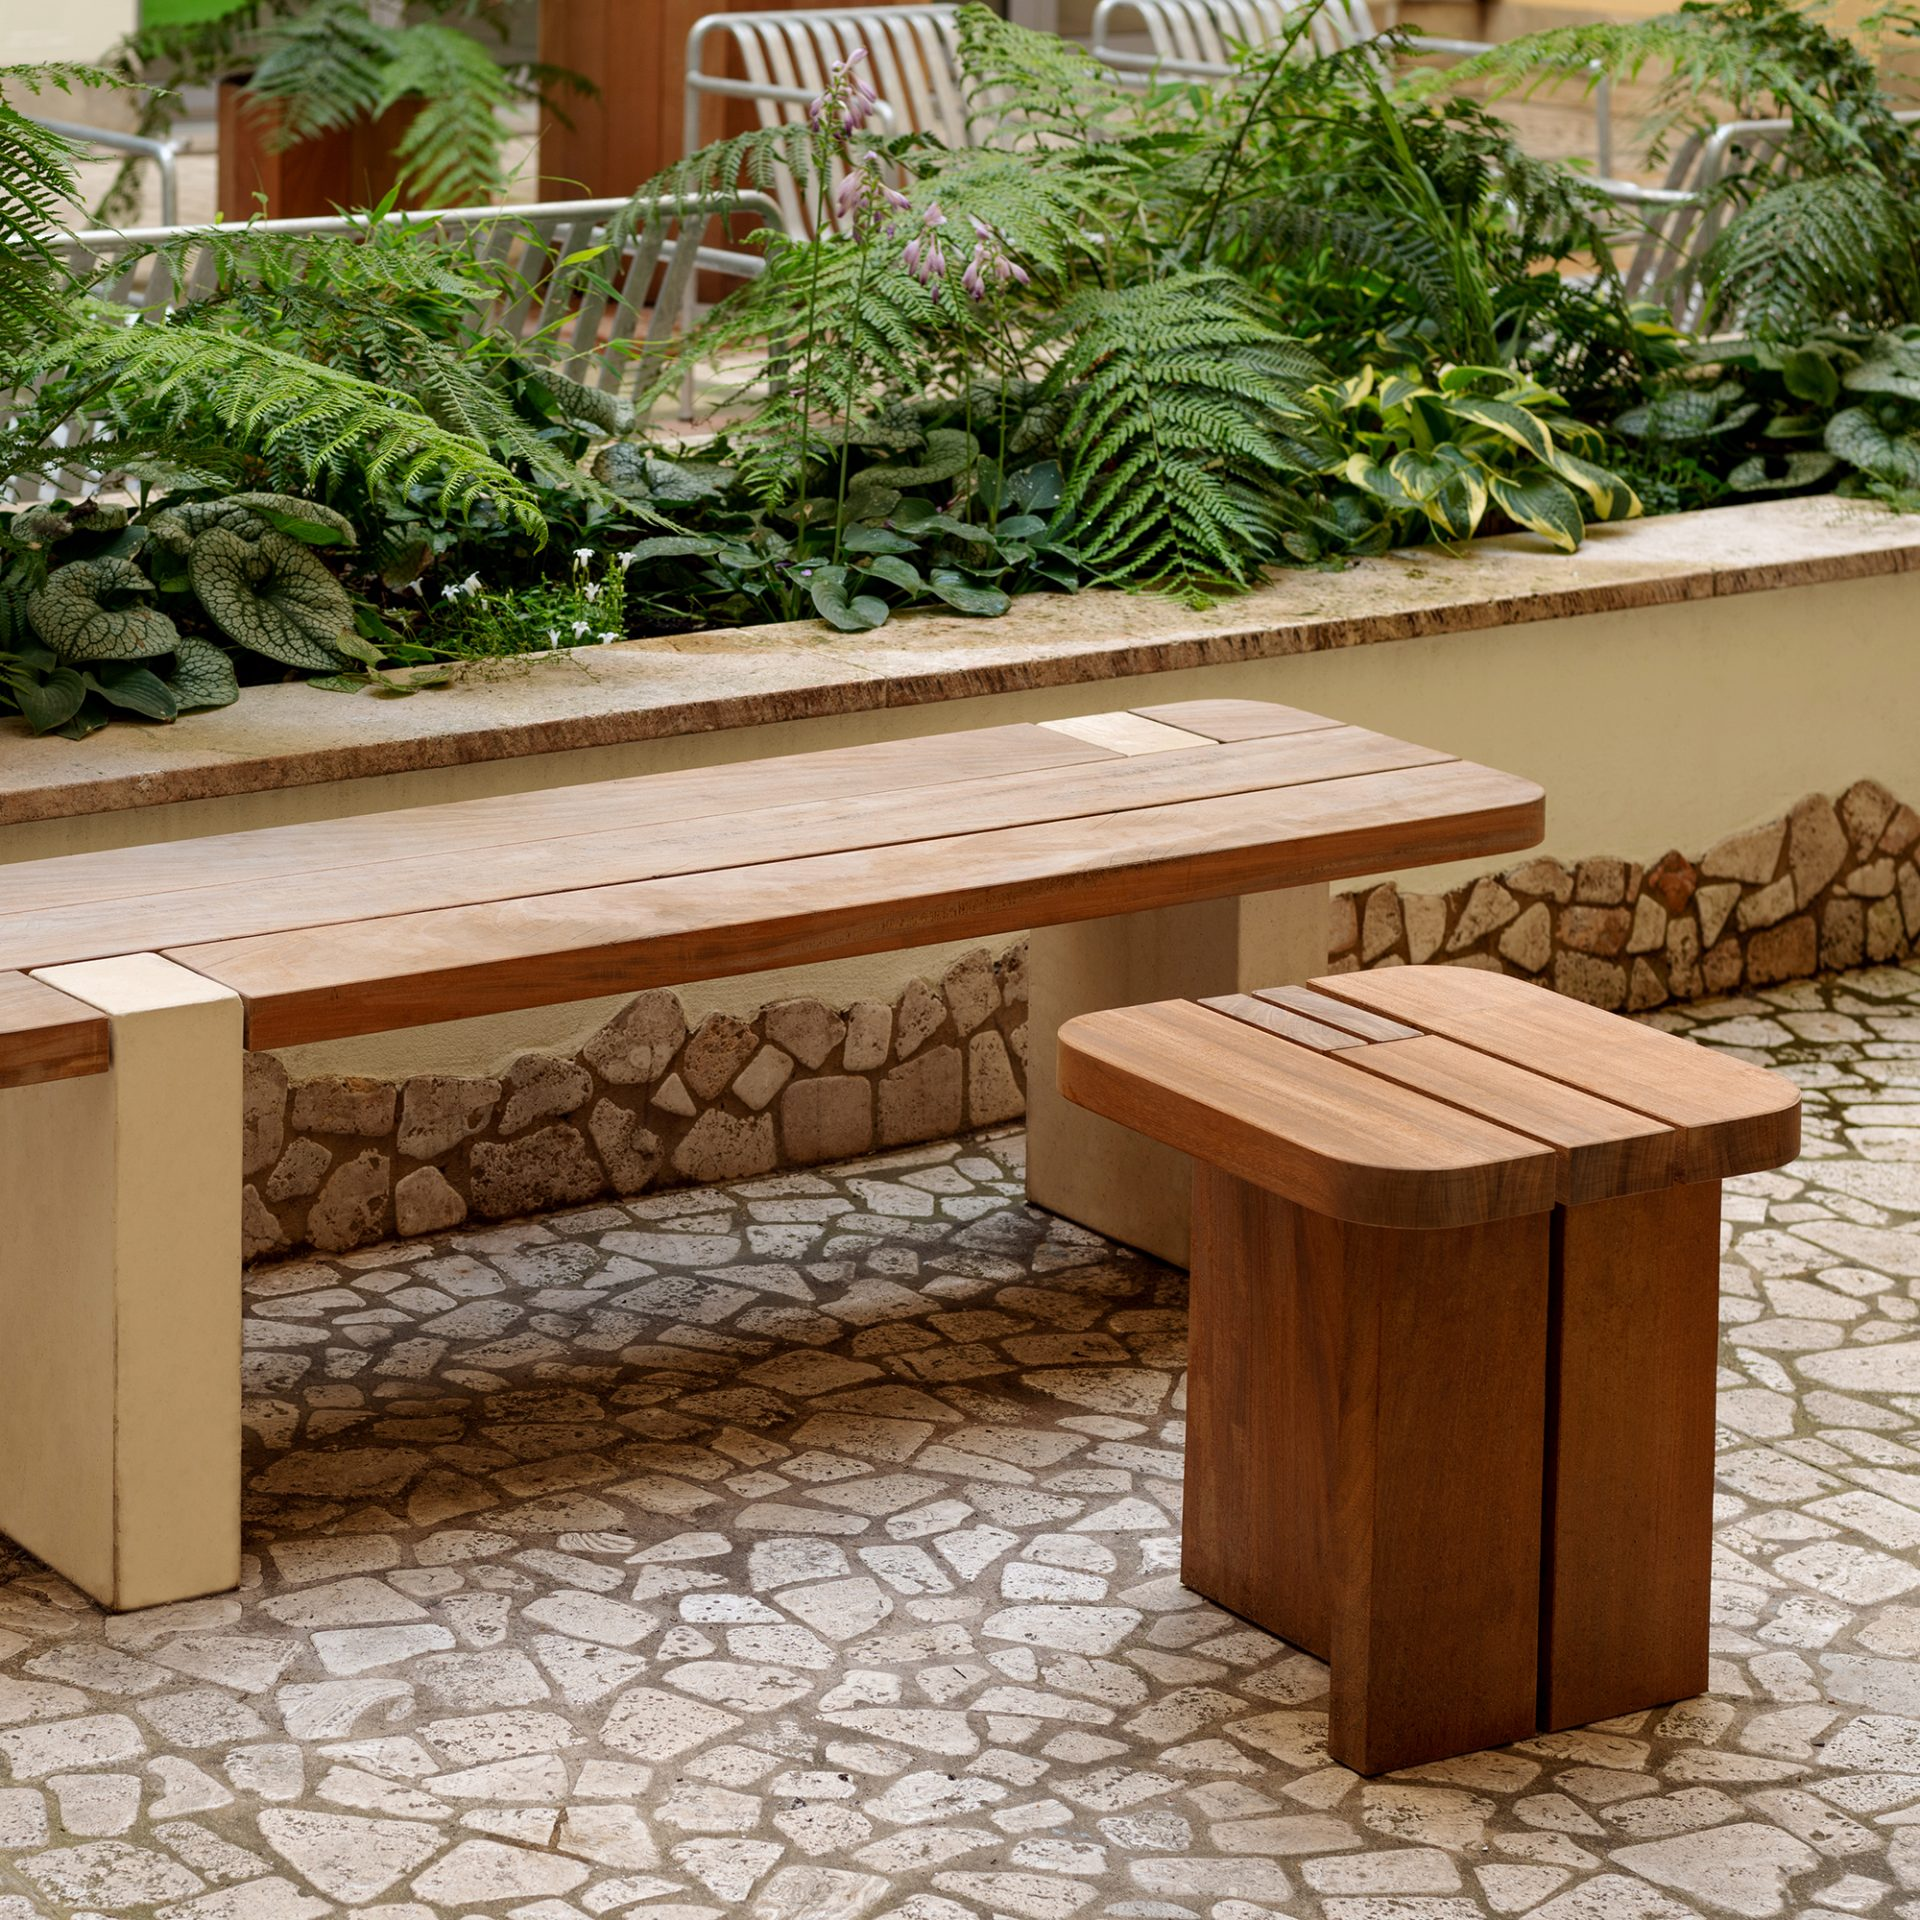 garden bench and stool